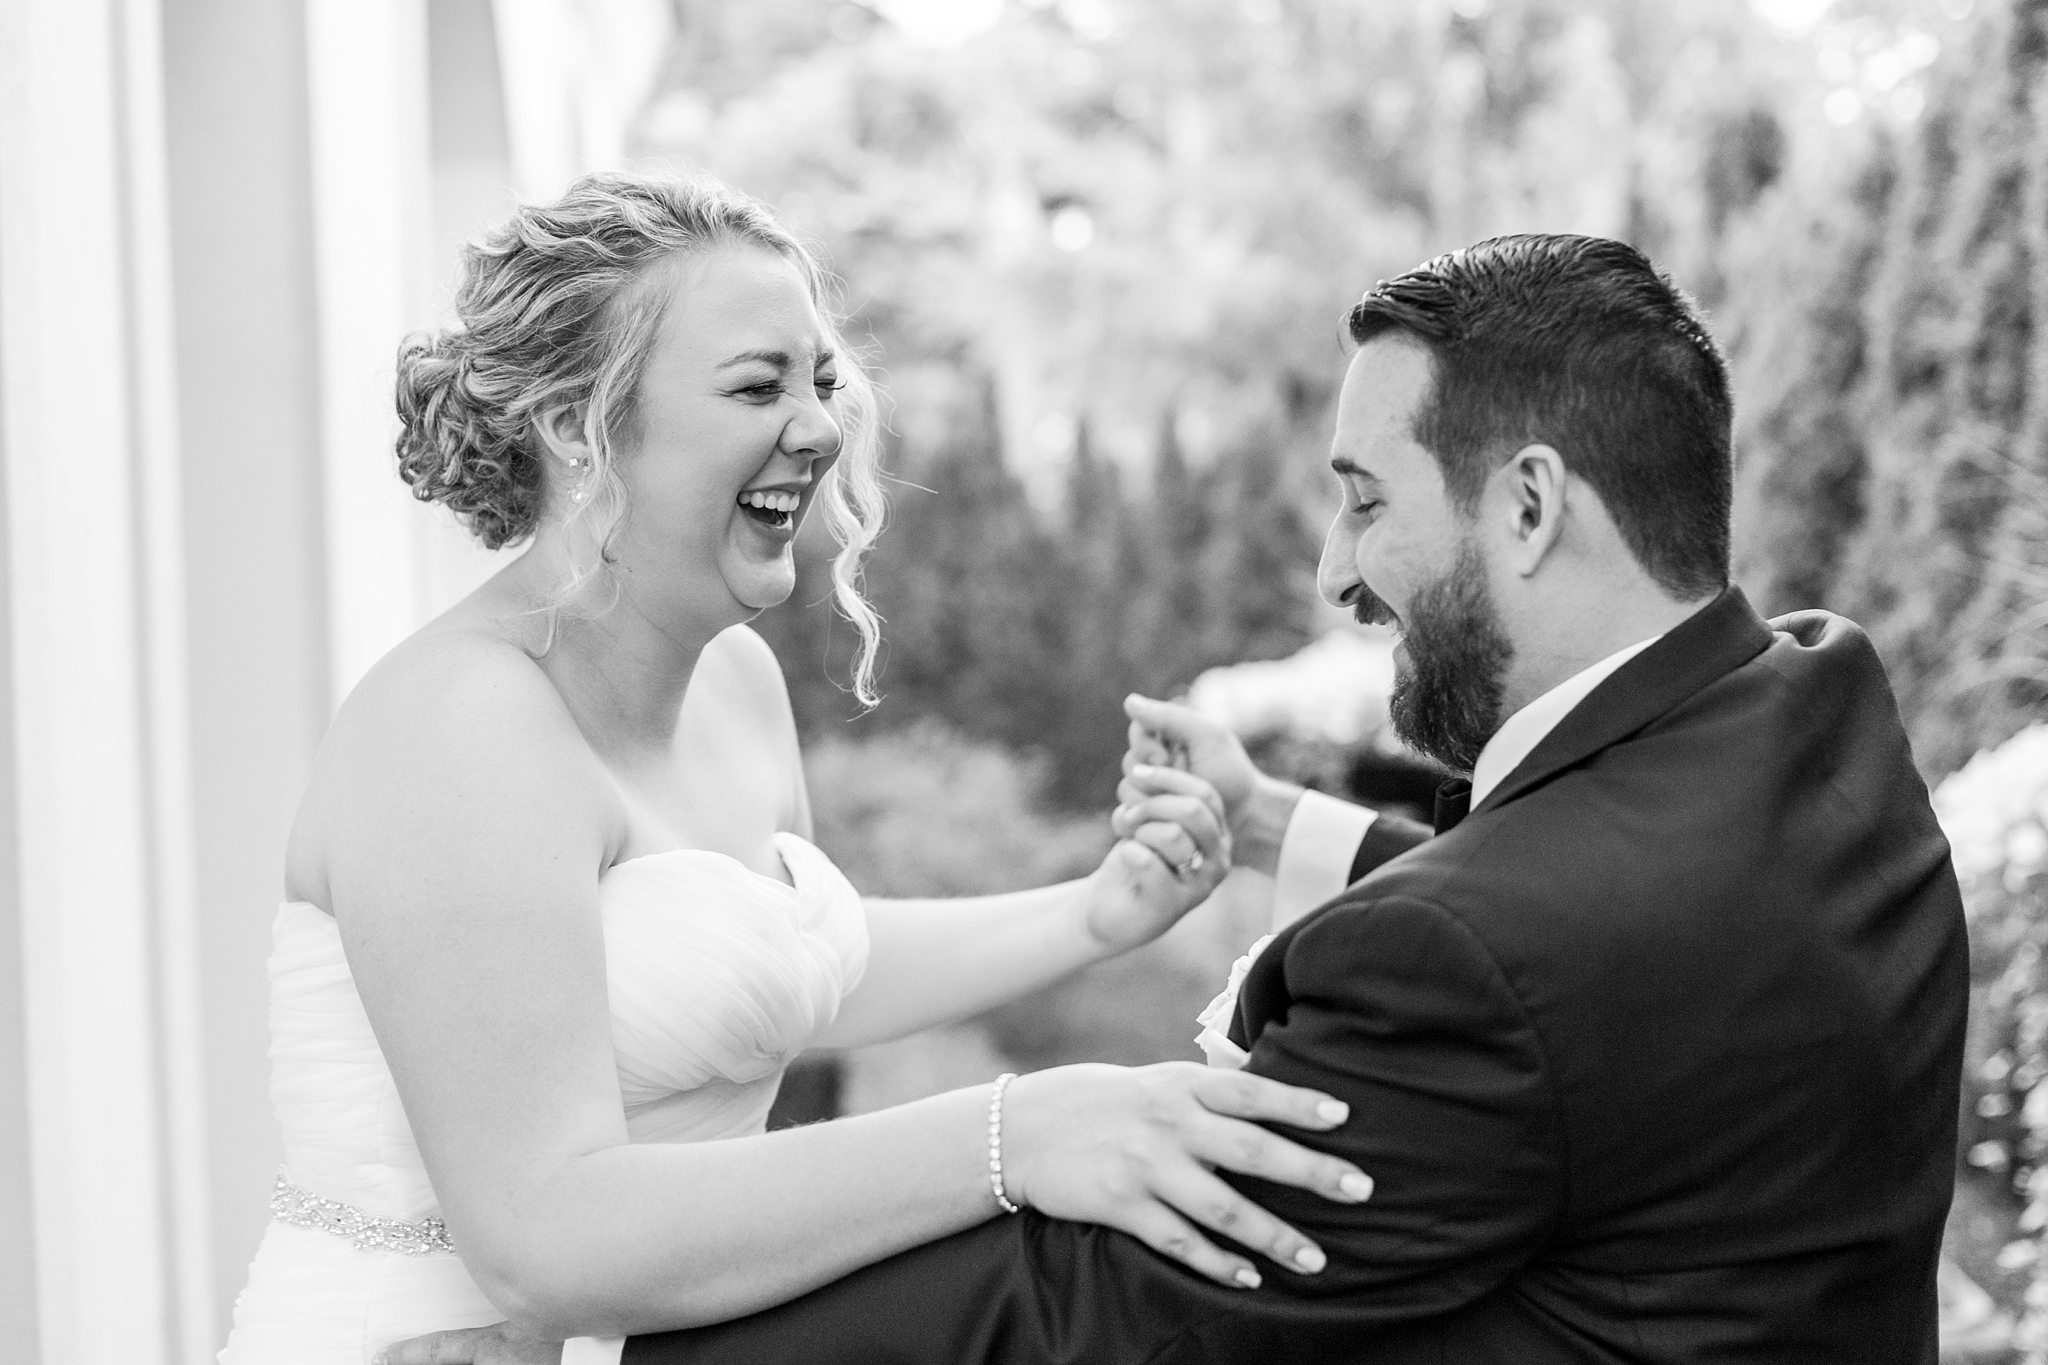 romantic-artful-candid-wedding-photos-in-detroit-lansing-ann-arbor-northern-michigan-and-chicago-by-courtney-carolyn-photography_0068.jpg